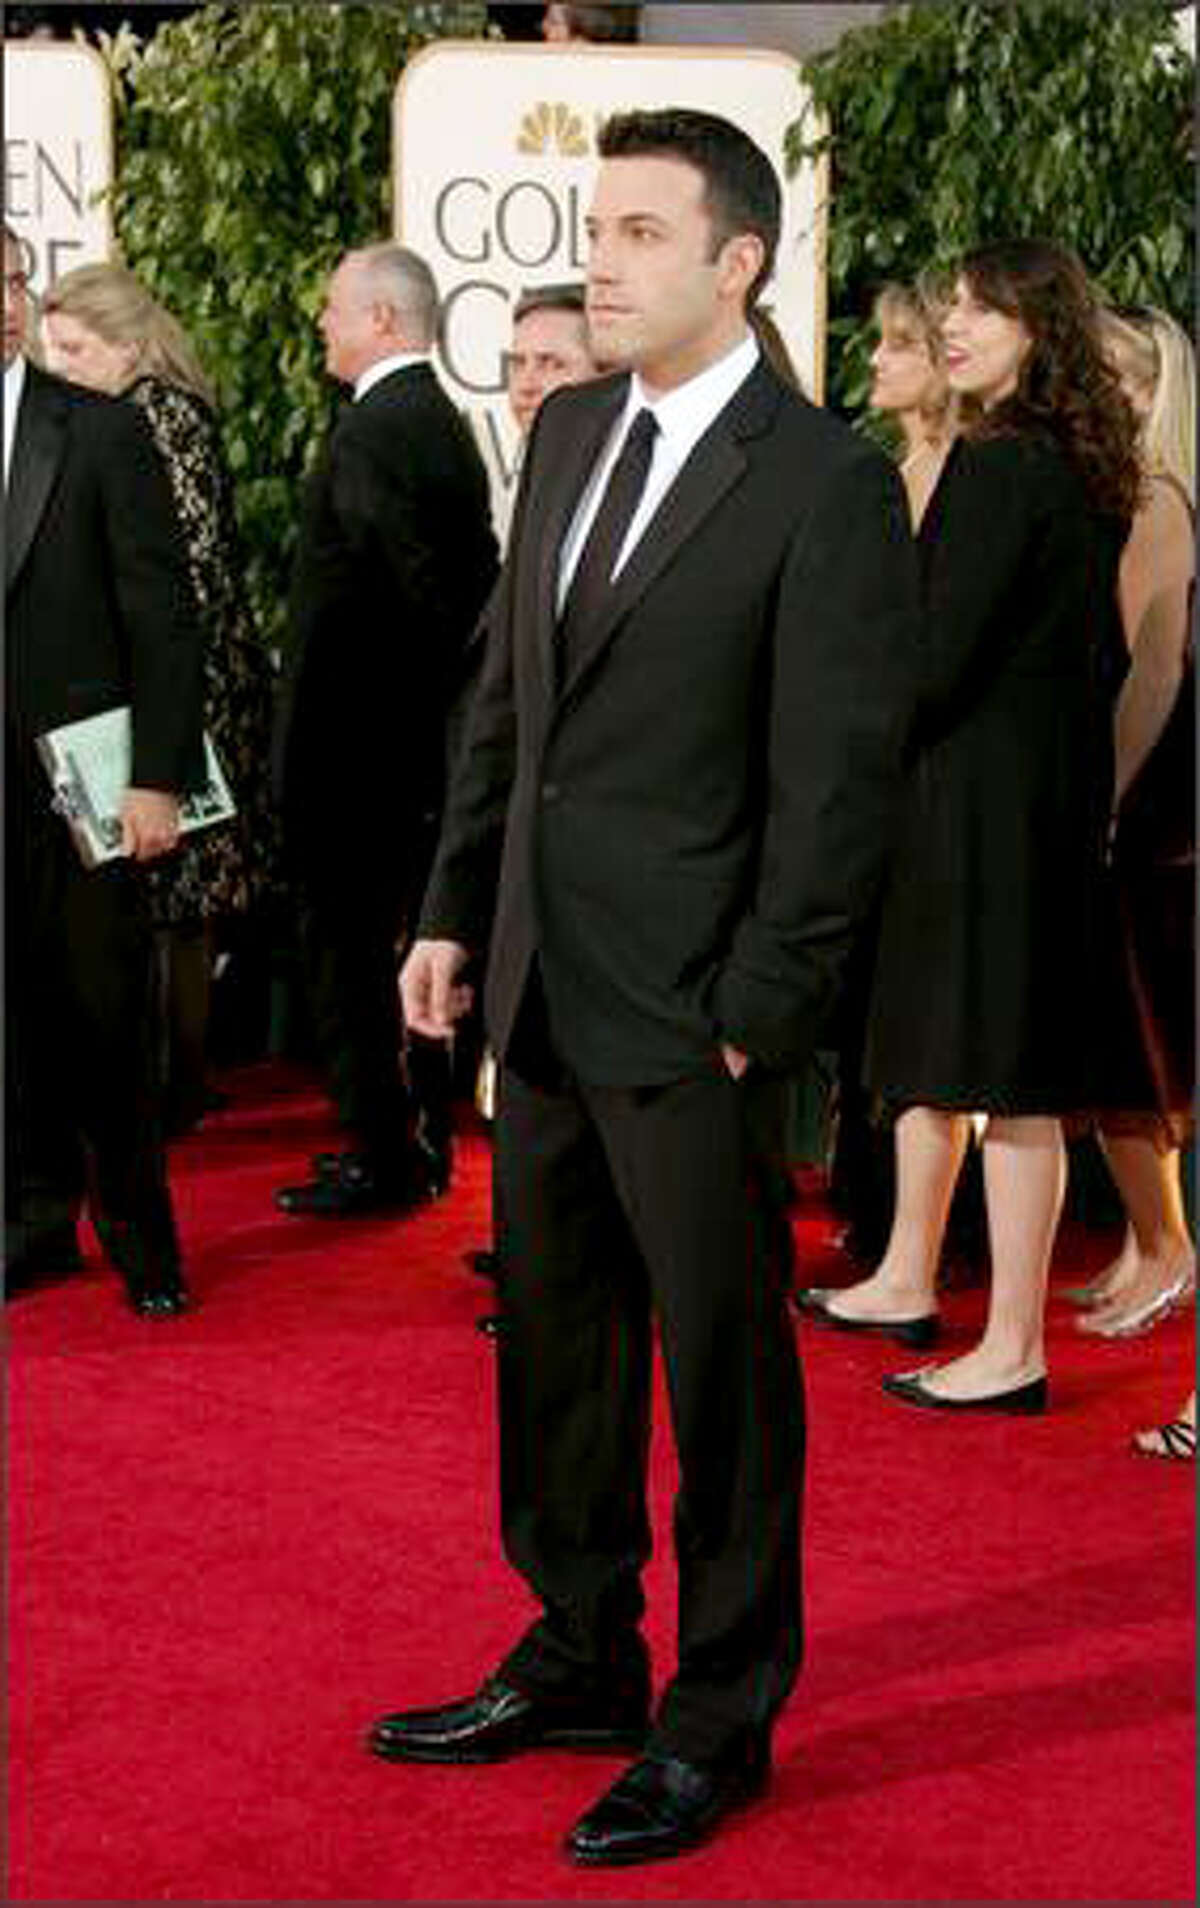 Actor Ben Affleck arrives at the 64th Annual Golden Globe Awards at the Beverly Hilton on Jan. 15, 2007 in Beverly Hills, Calif. This year's event was deflated from star-studded revelry to dry, news conference-style awards announcement Sunday night because of the Hollywood writers strike. In its absence, please enjoy these scenes from last year's red carpet.